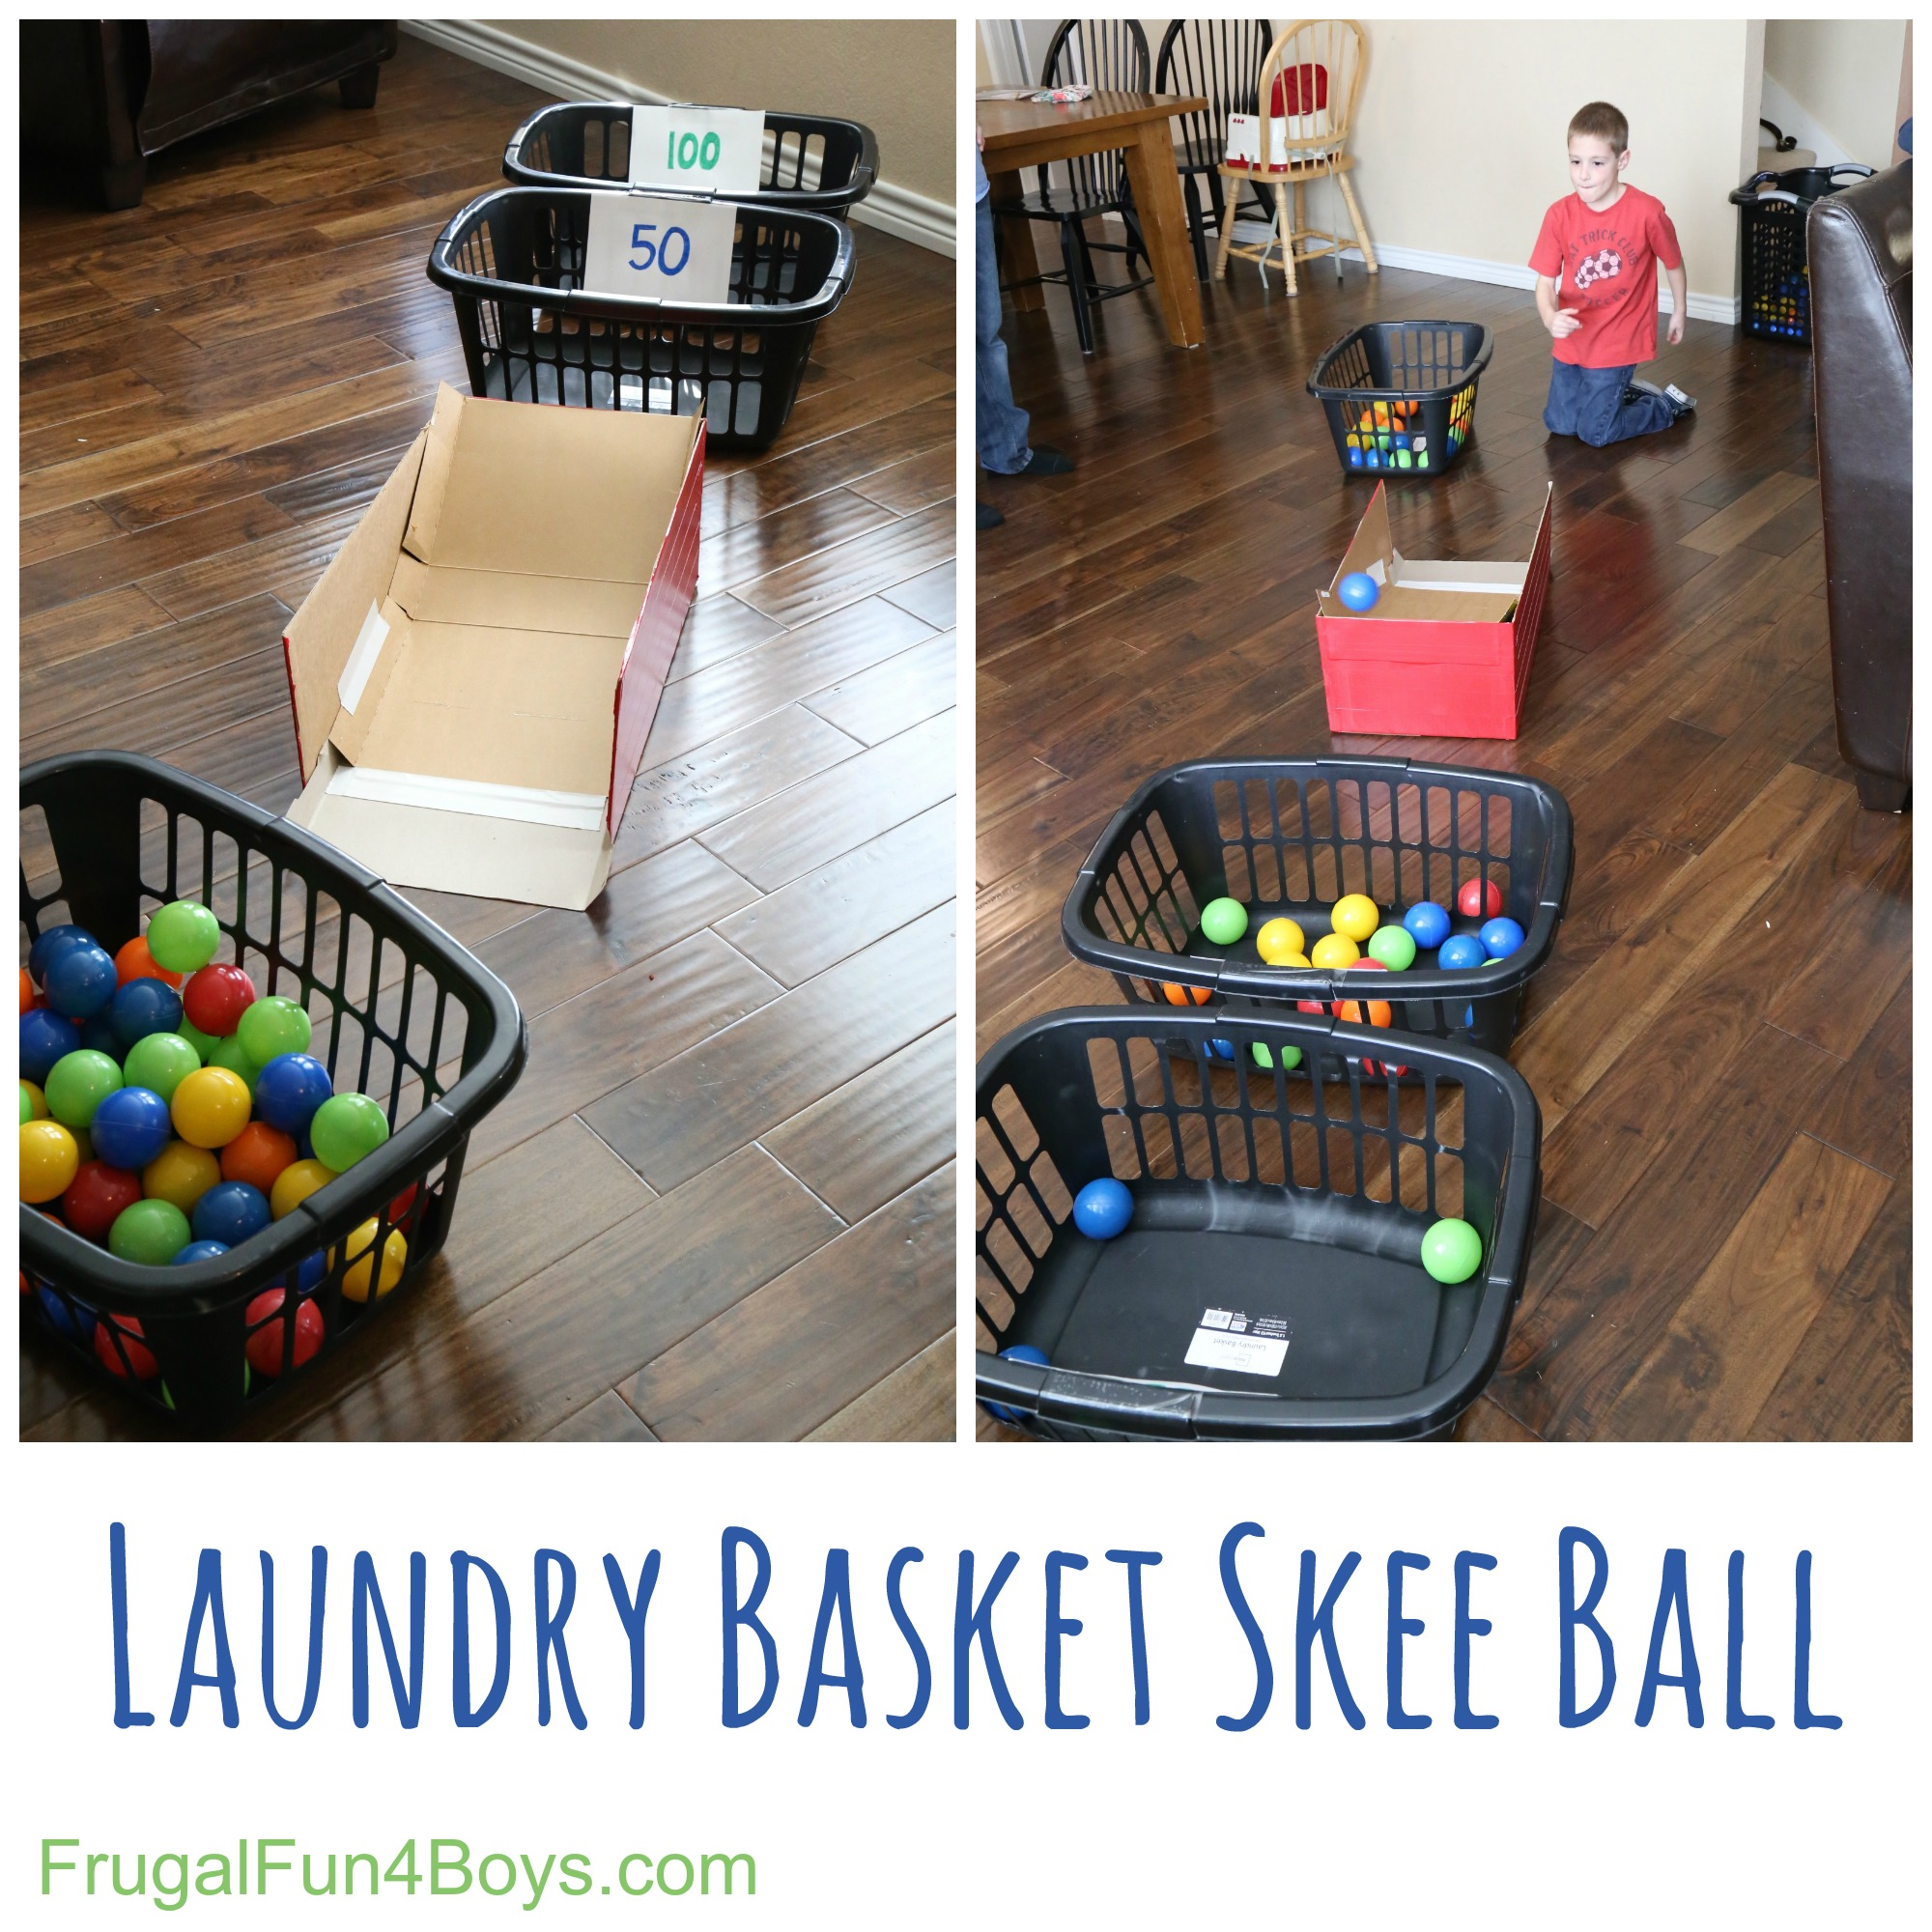 Fun games to play around the house